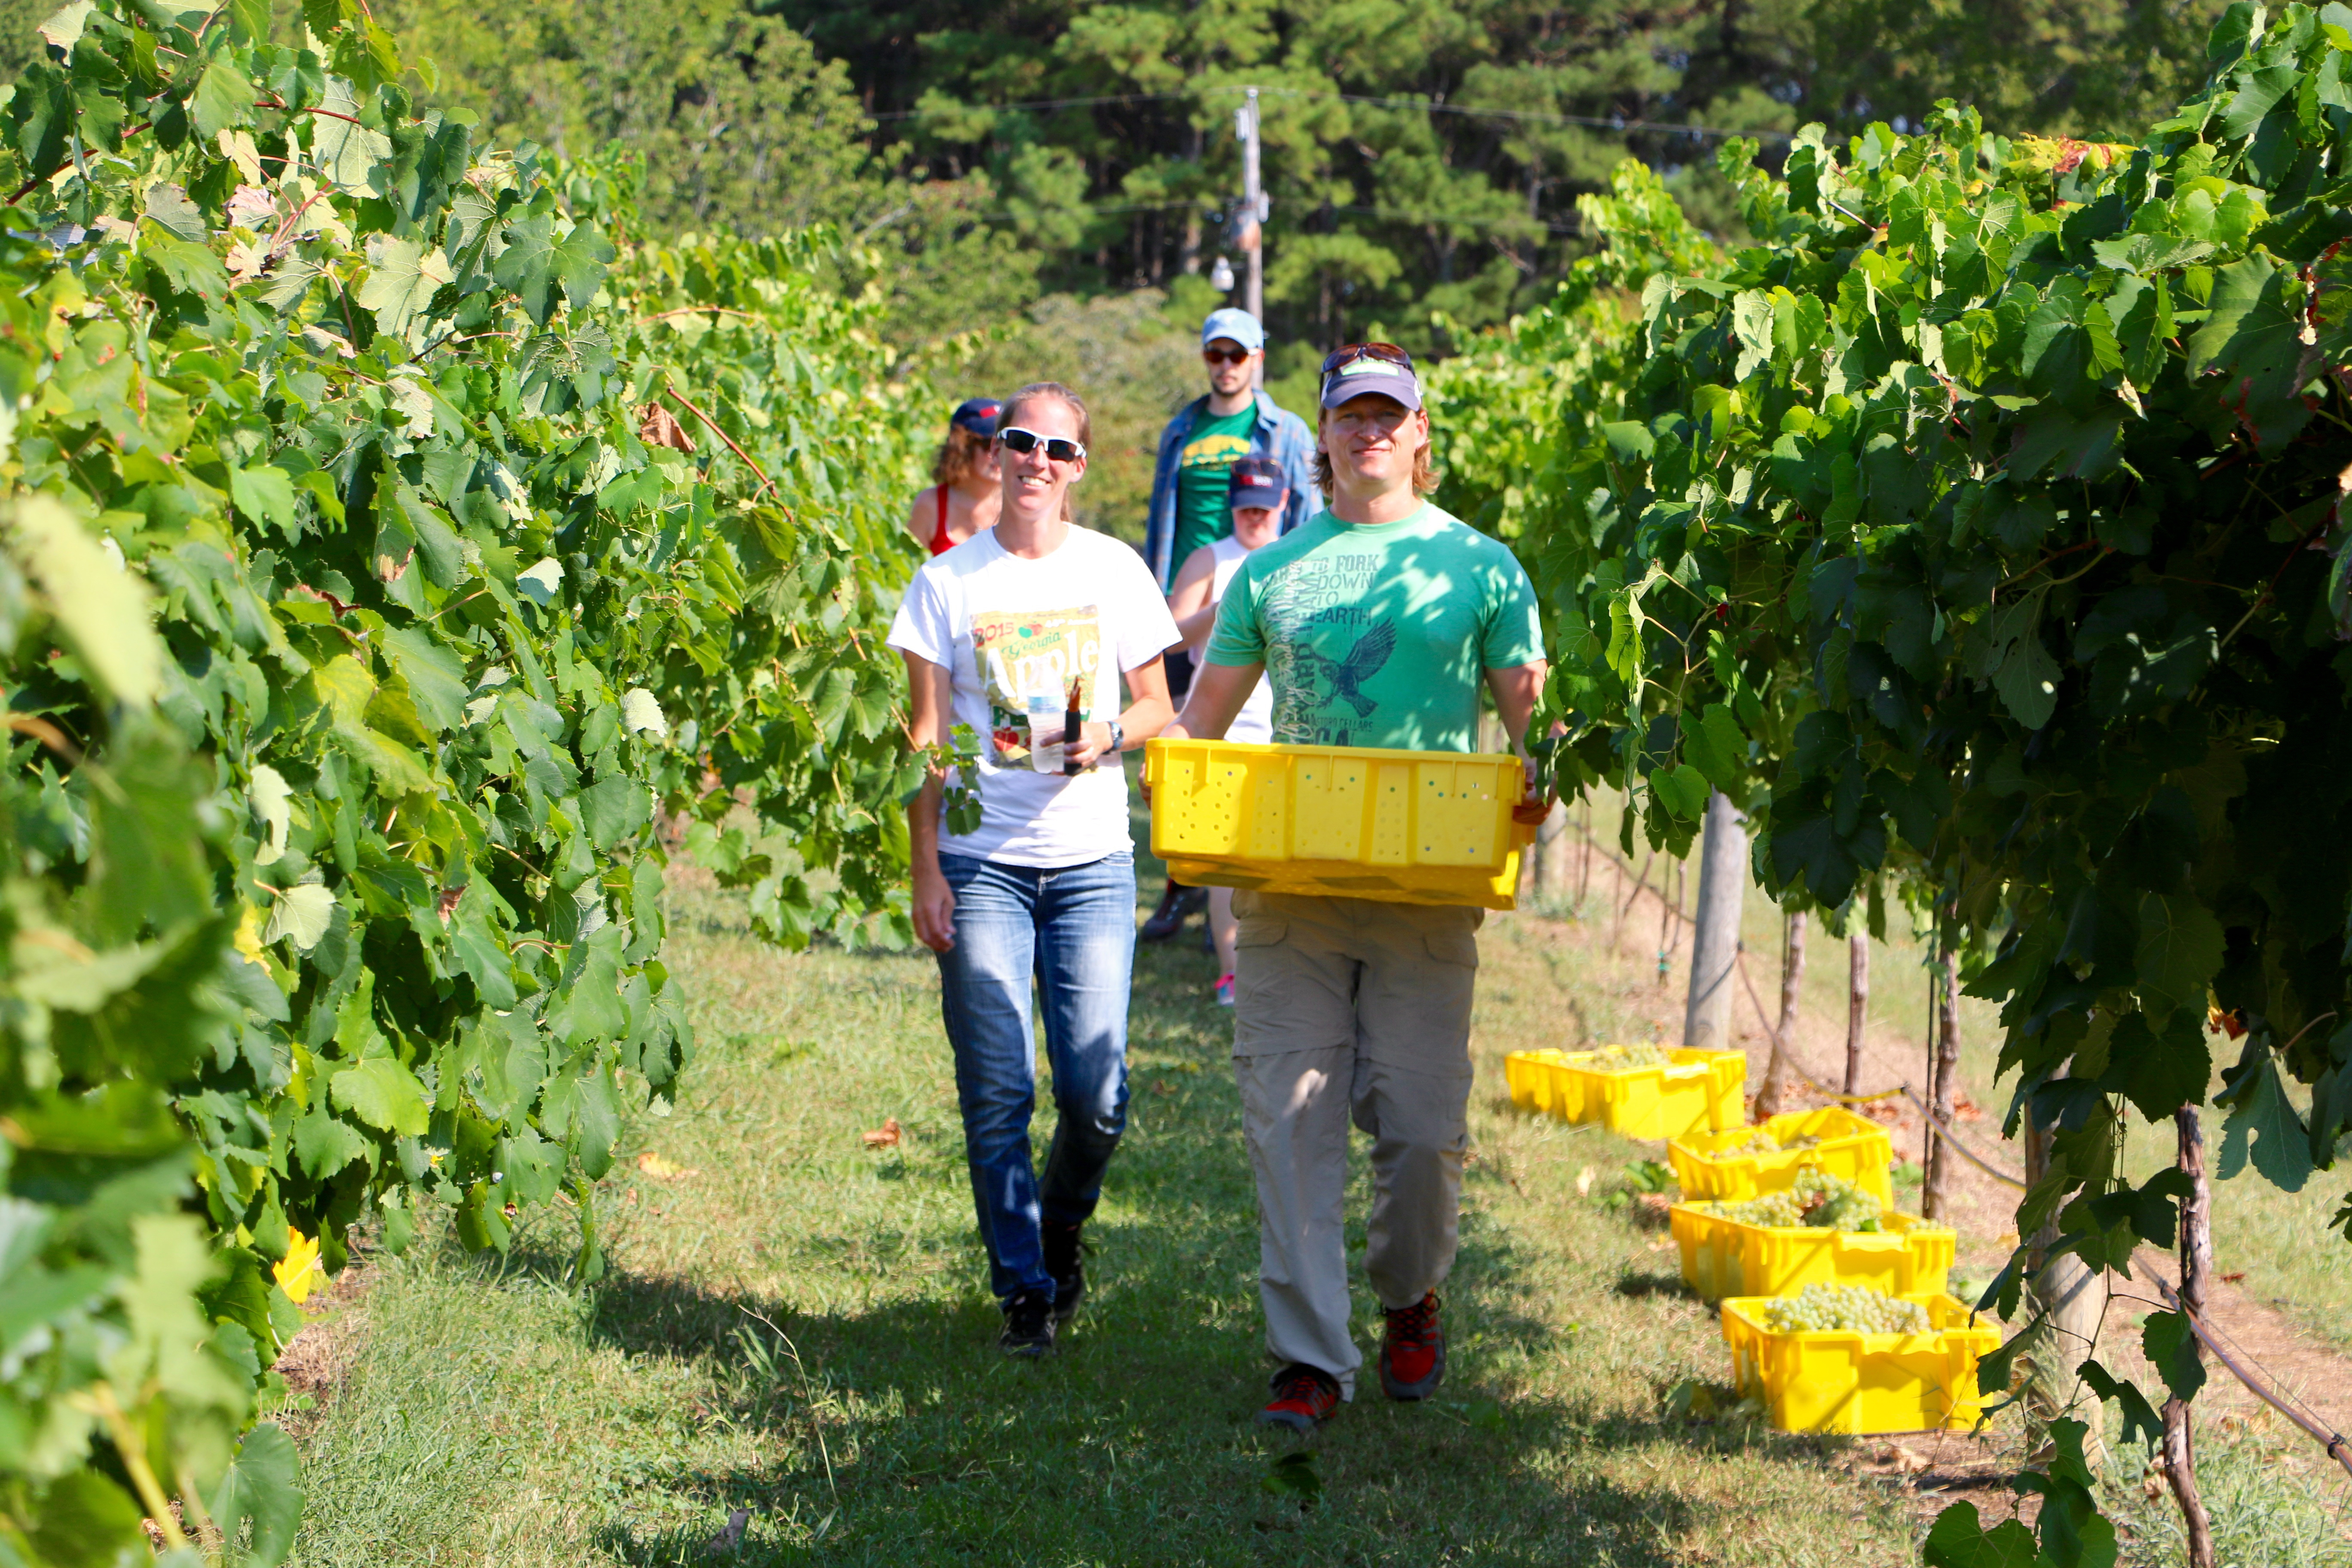 On August 16, UGA Extension specialists will offer aspiring wine makers a crash course on the wine industry.